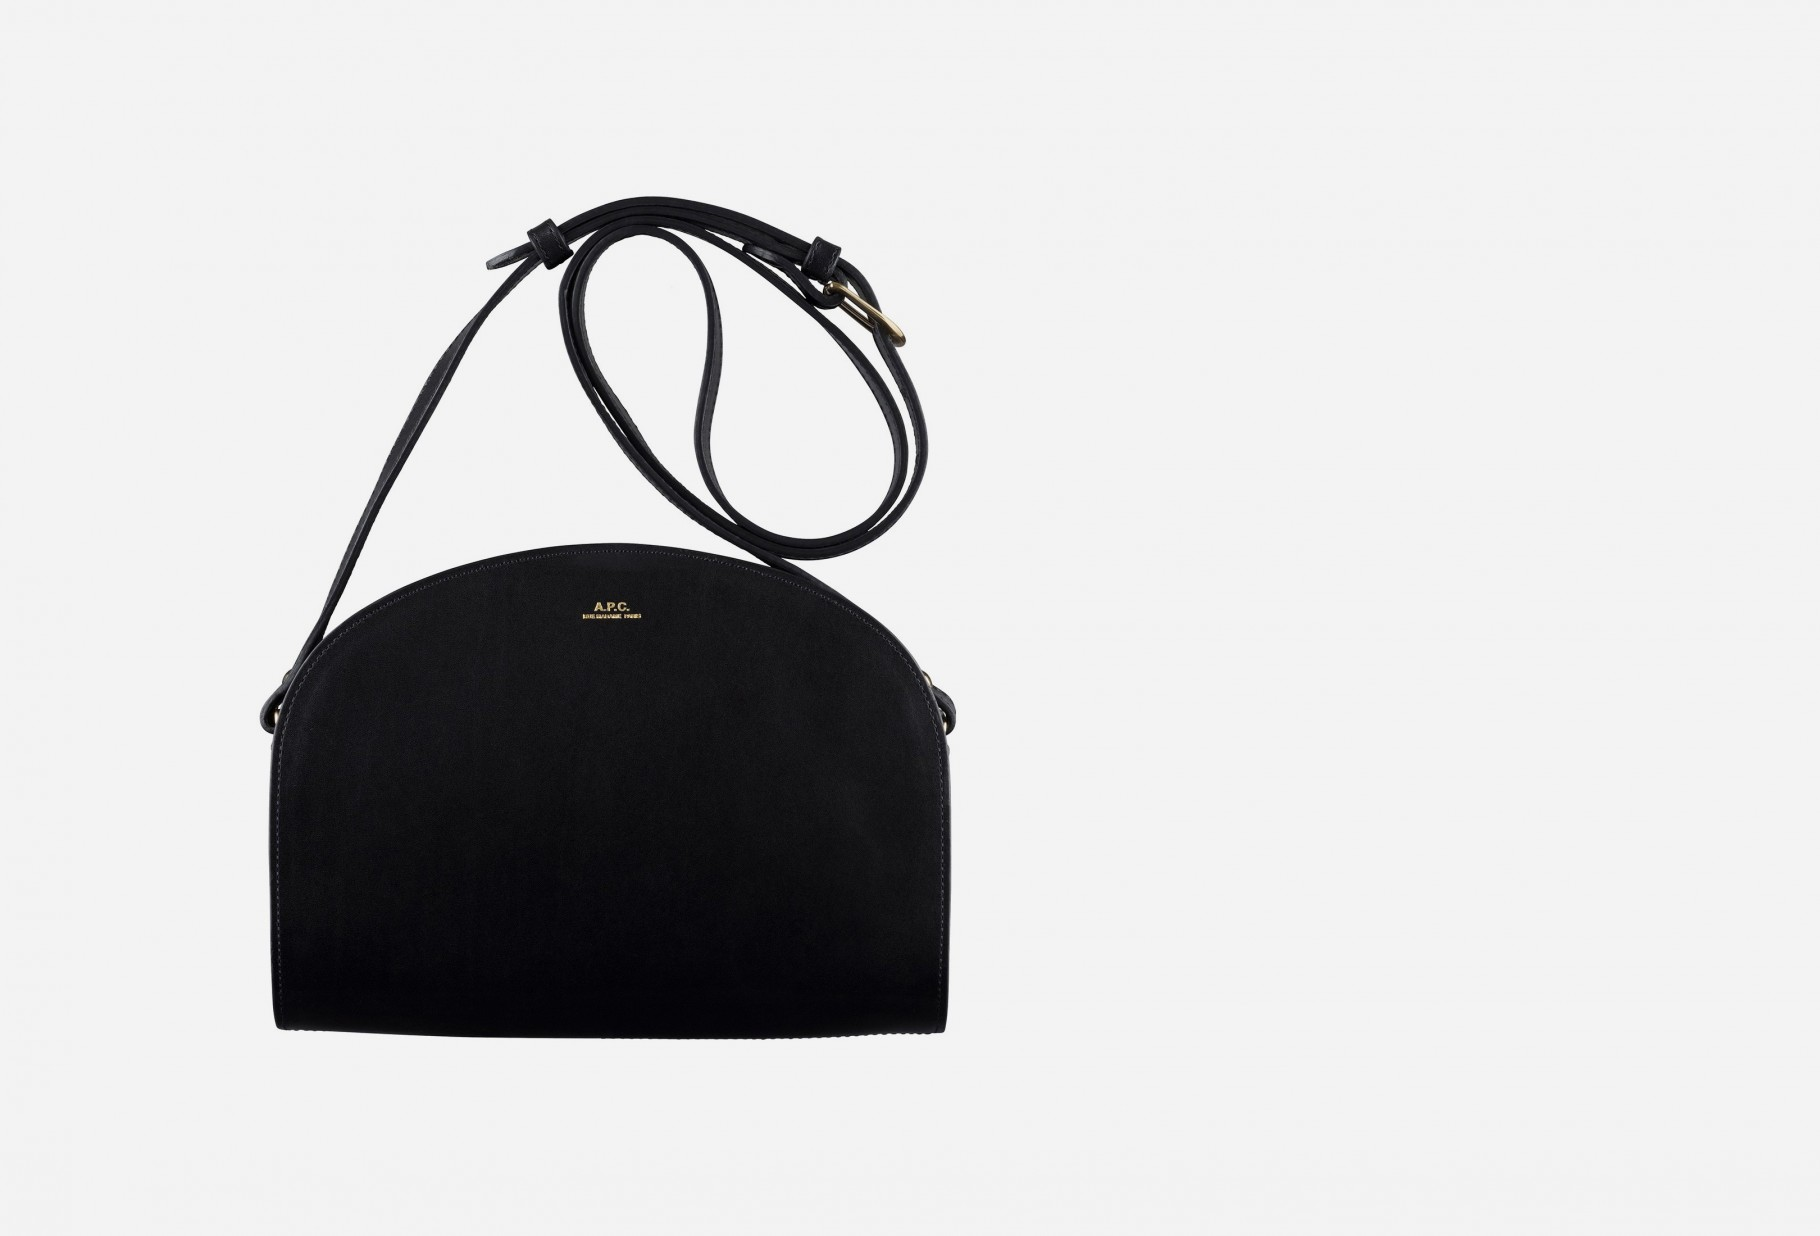 A.P.C. FOR WOMAN / Sac demi-lune